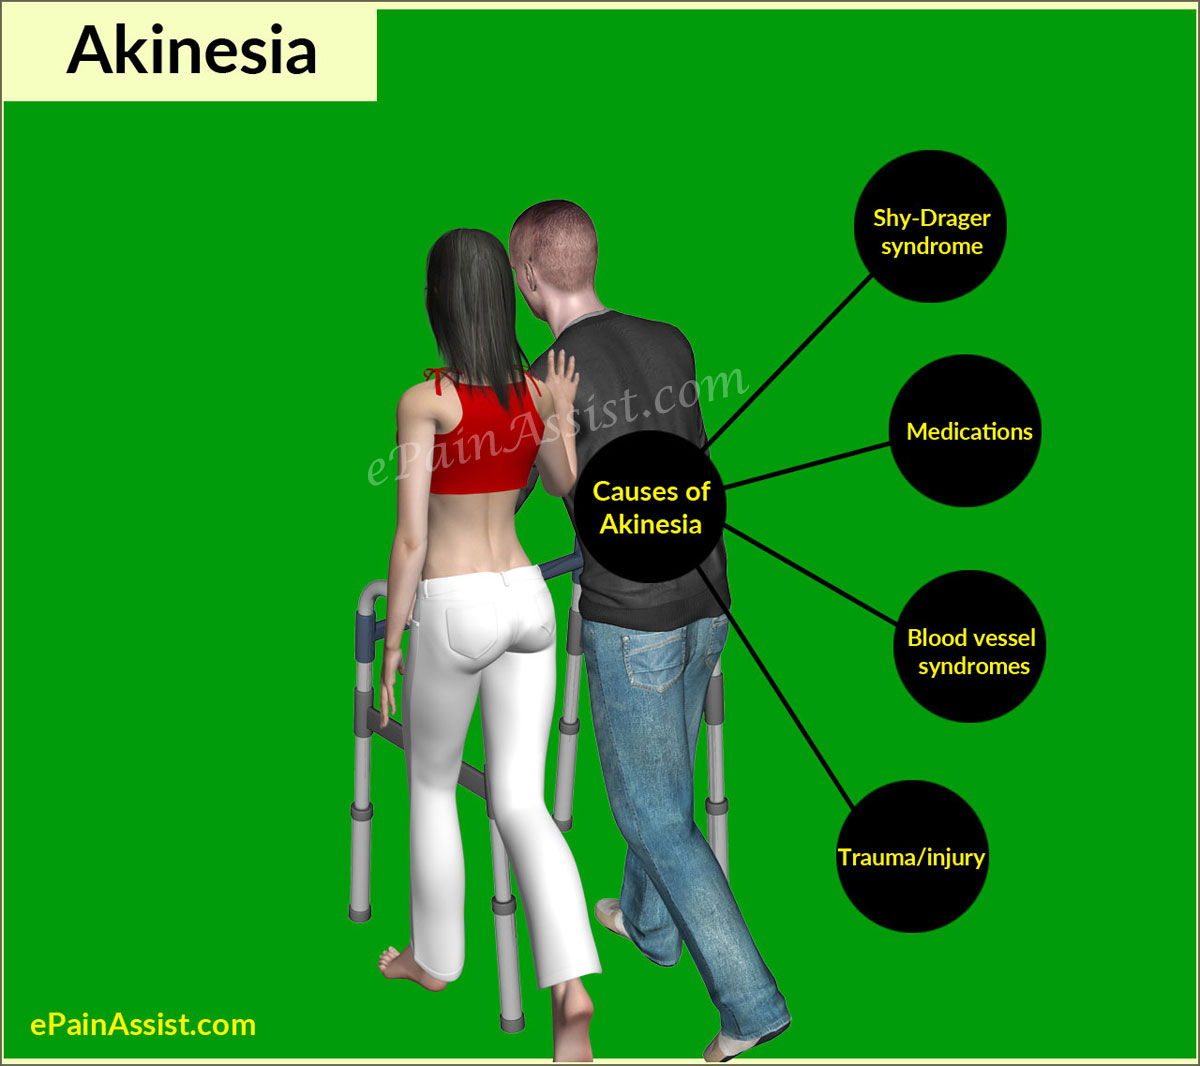 Causes of Akinesia